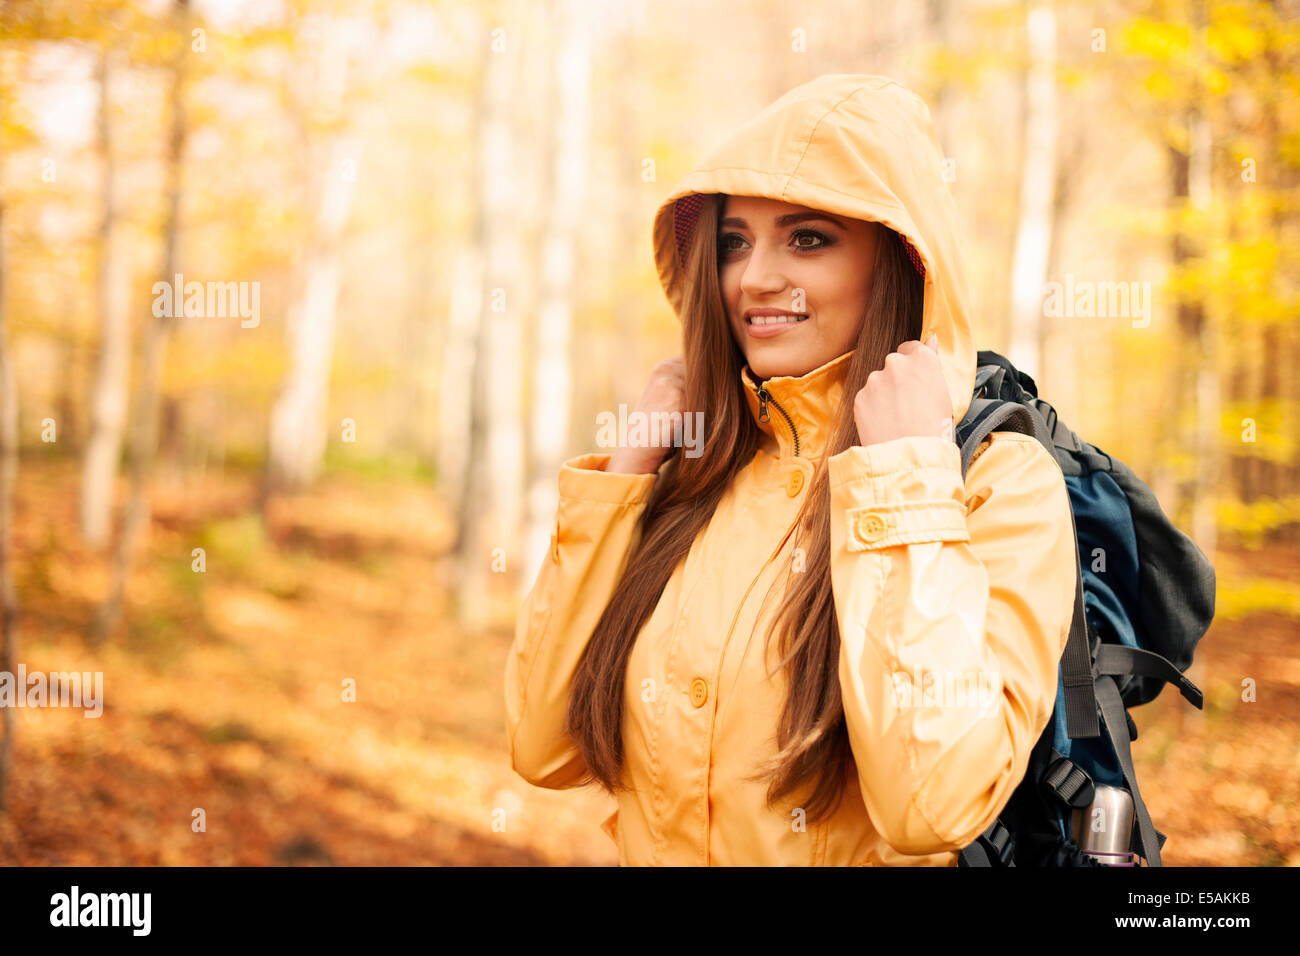 Female hiker protecting against rain, Debica, Poland - Stock Image